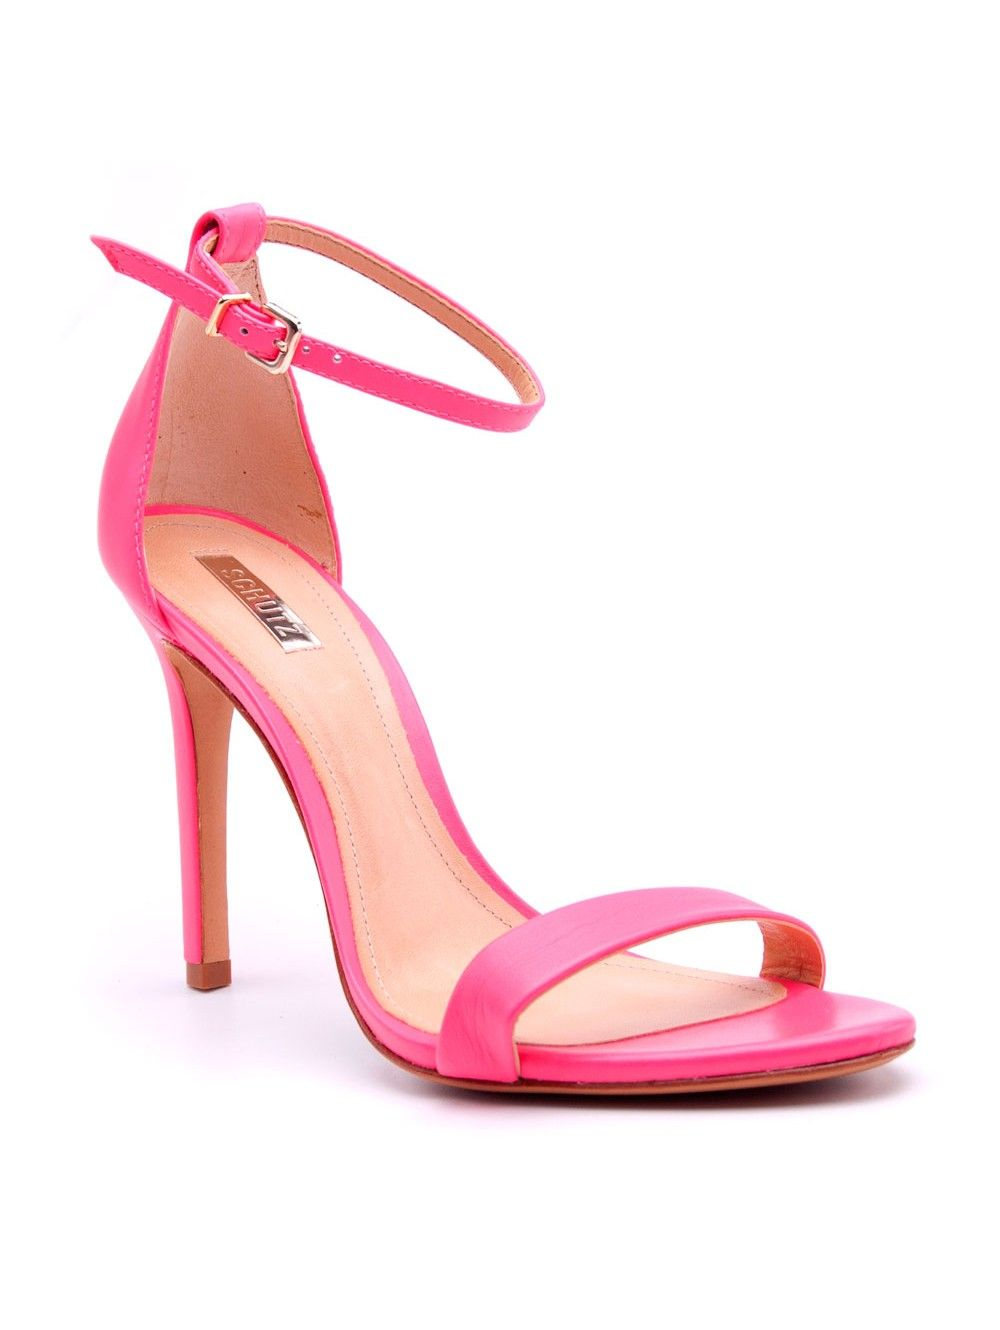 Schutz Neon Pink Cadey Lee Sandals | Shoes | Pinterest | Shoes ...